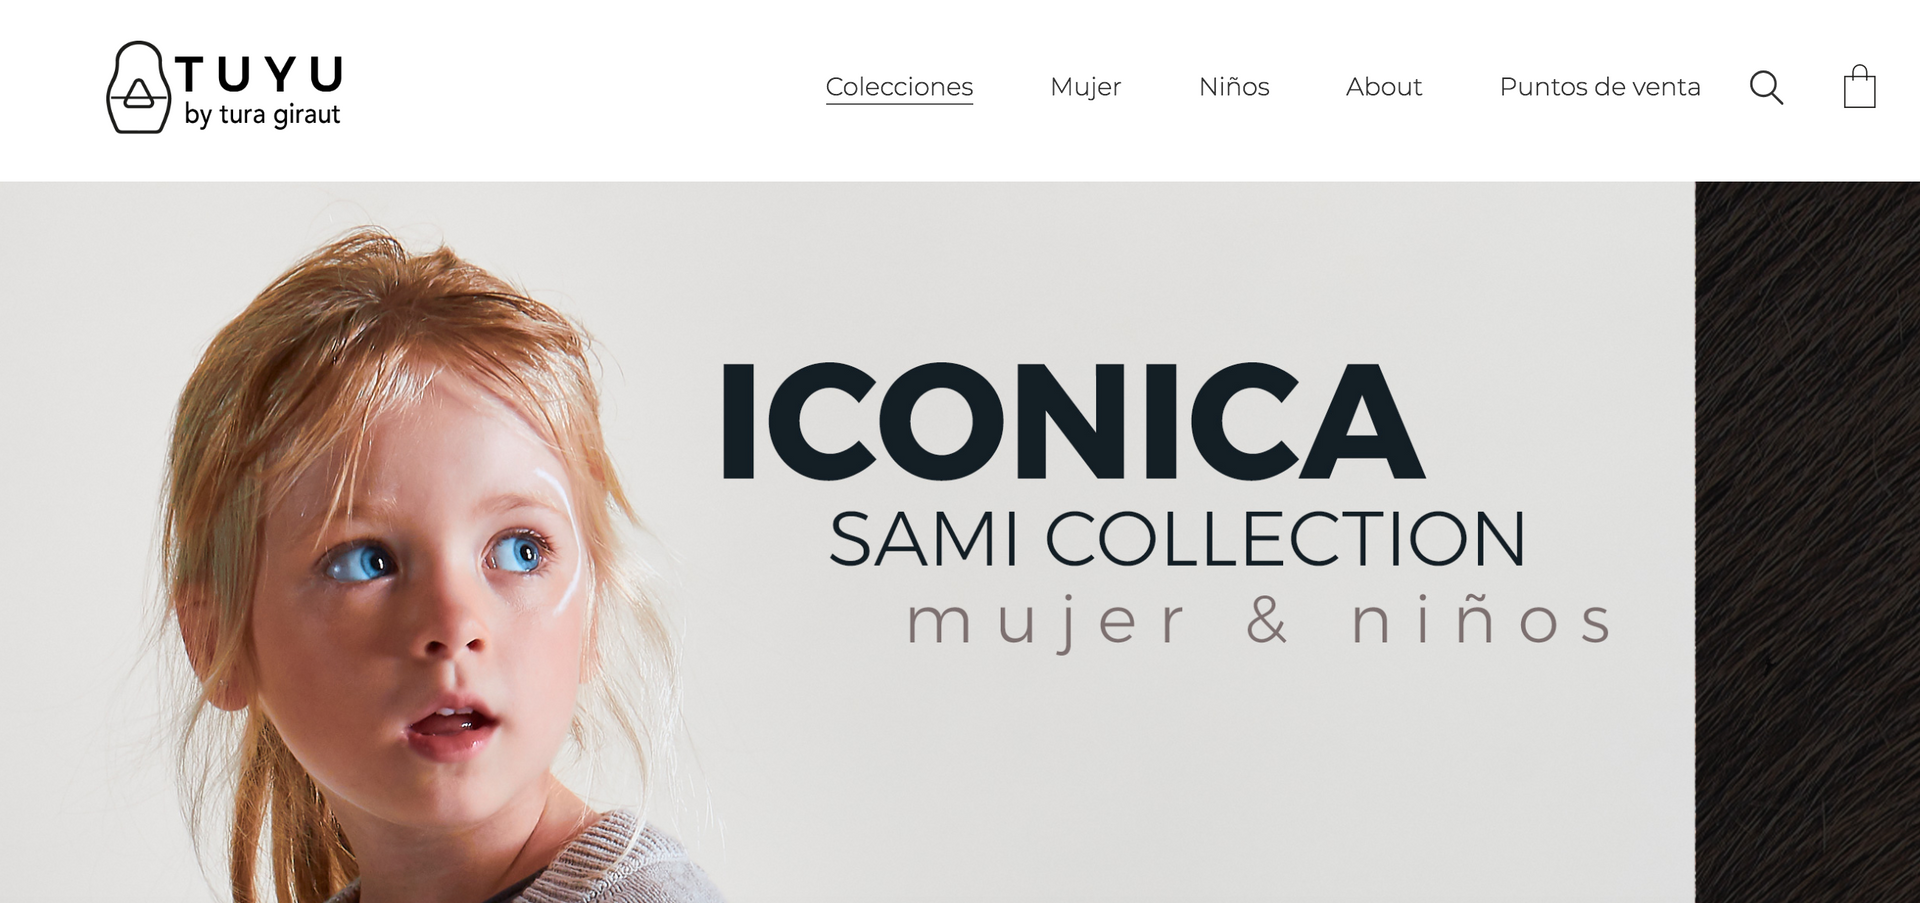 ICONICA SAMI COLLECTION